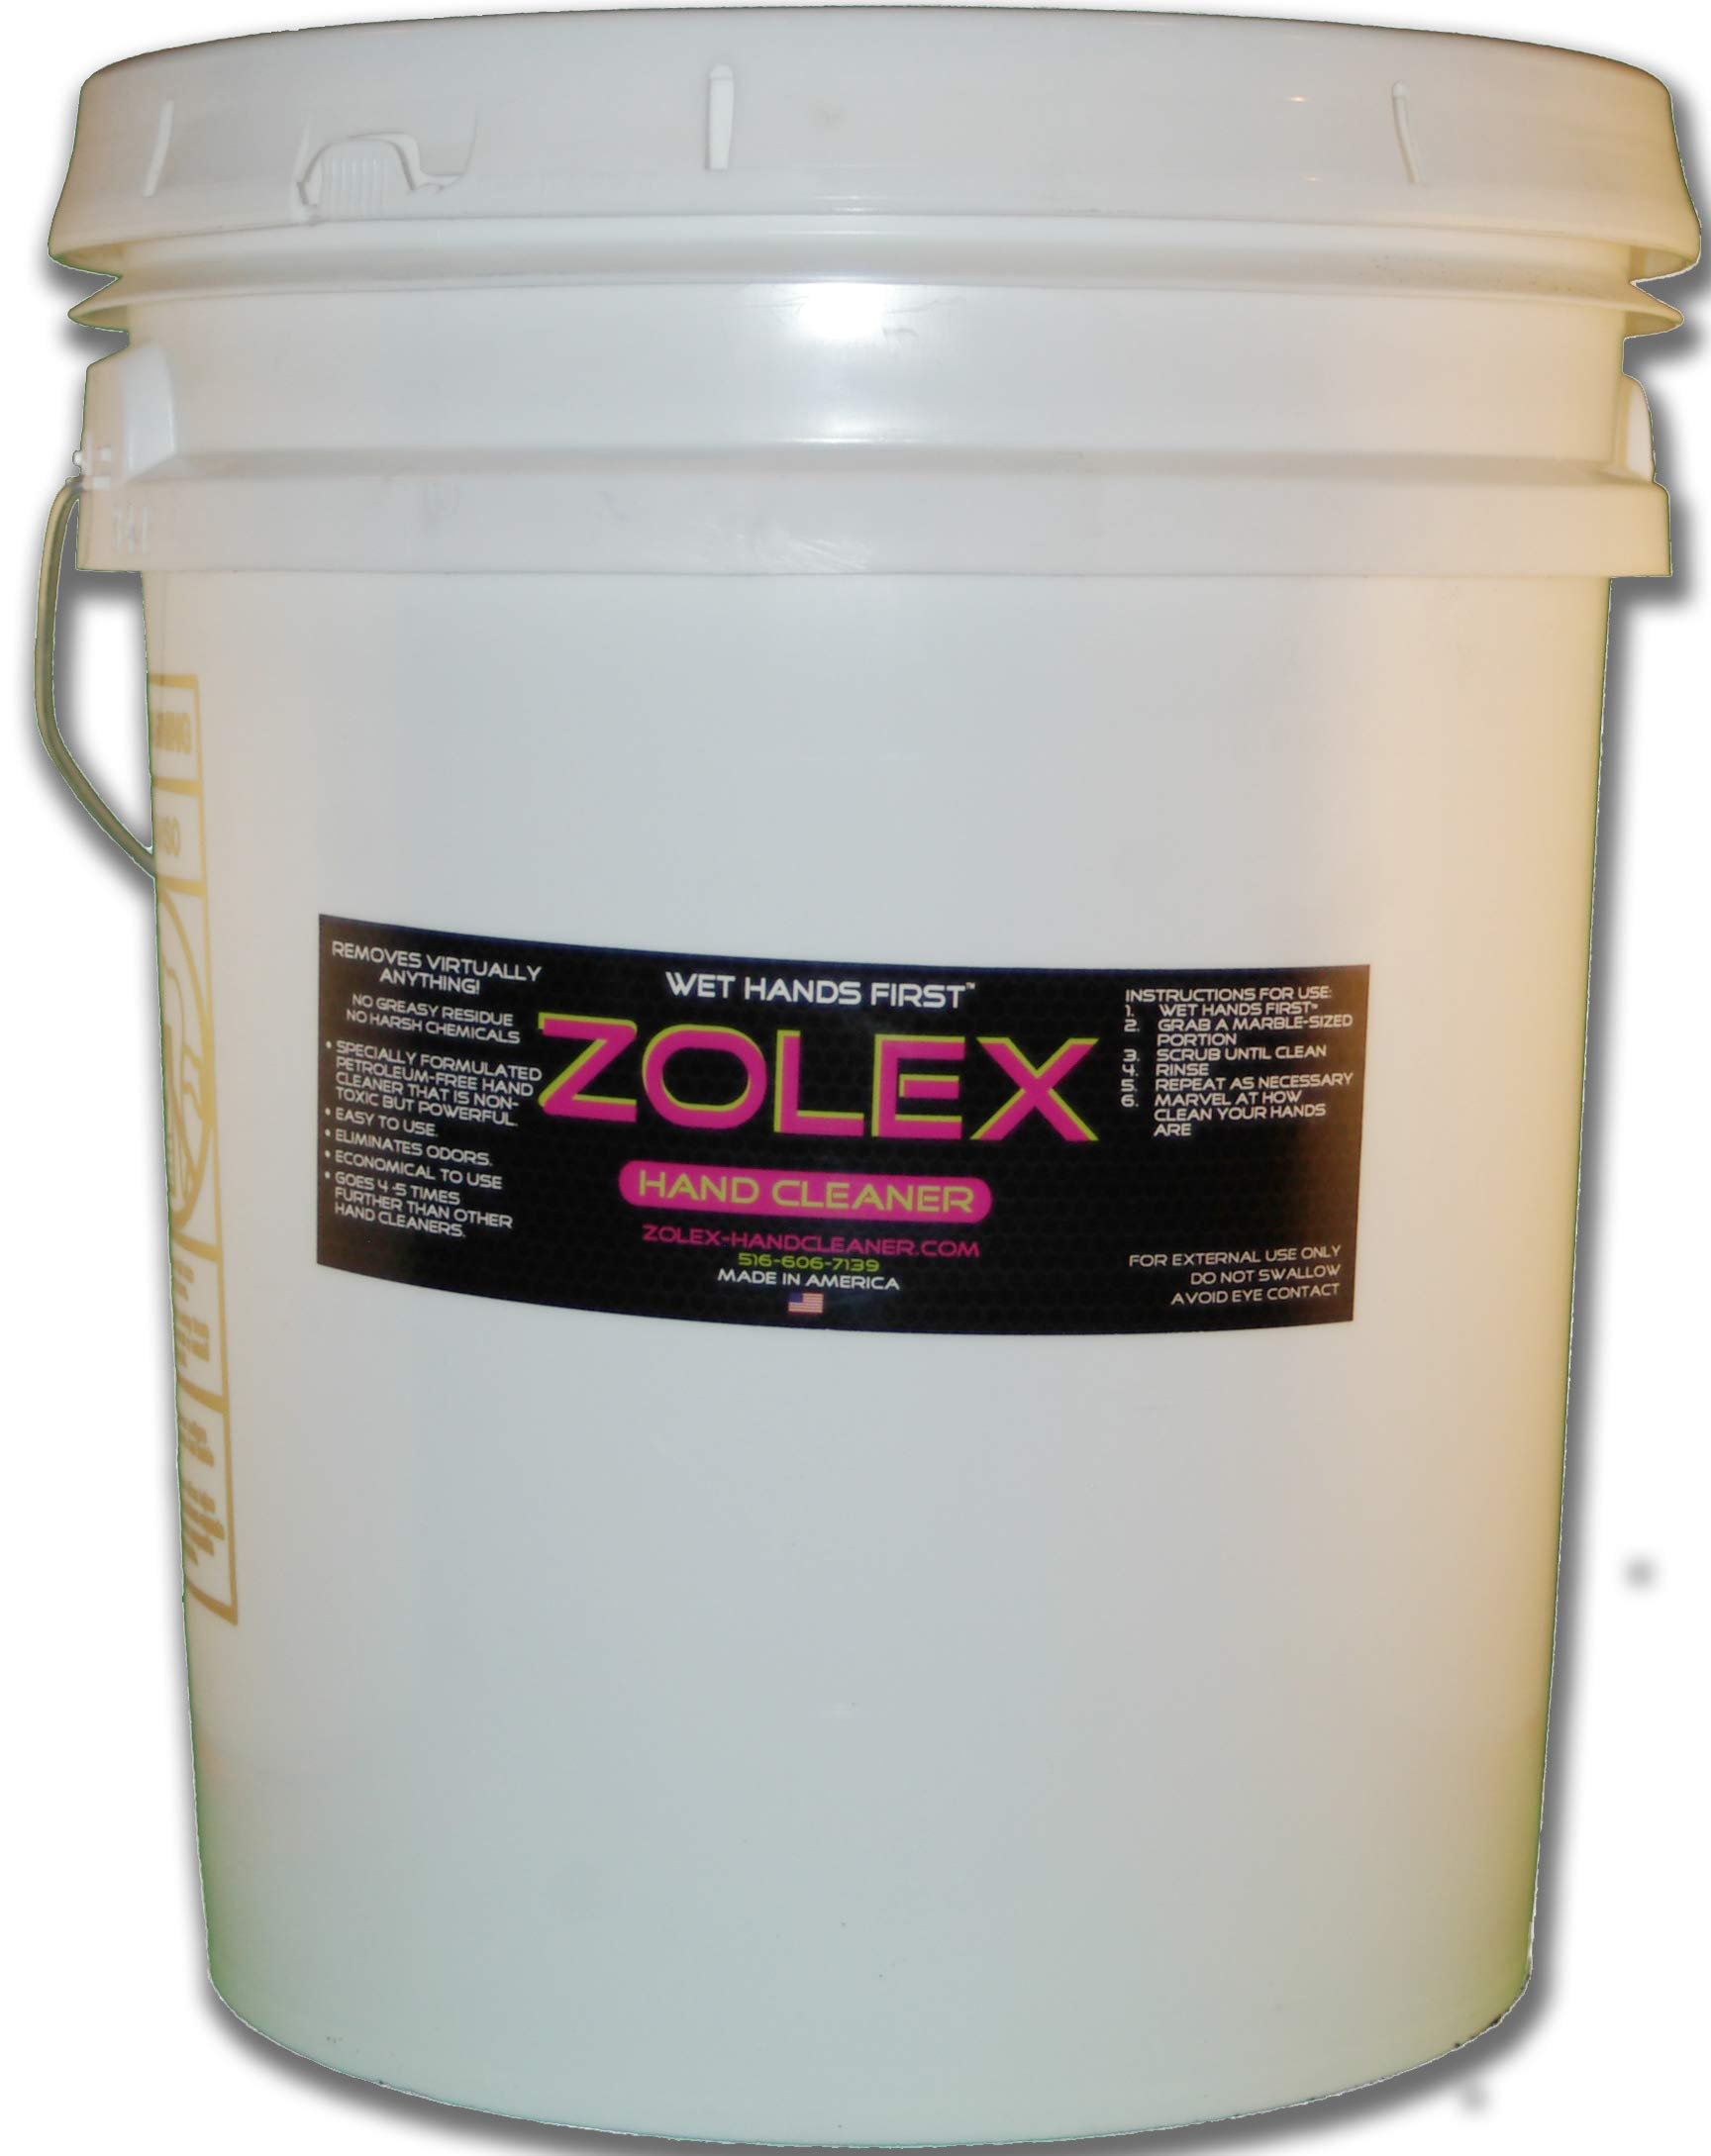 Zolex Water Activated Hand Cleaner for Working Hands| Stain Remover for Heavy Duty Workers | Grease Remover for Auto Mechanics - Non-Toxic Petroleum Free | Commercial-Sized Pail (25 lb) by Zolex (Image #1)